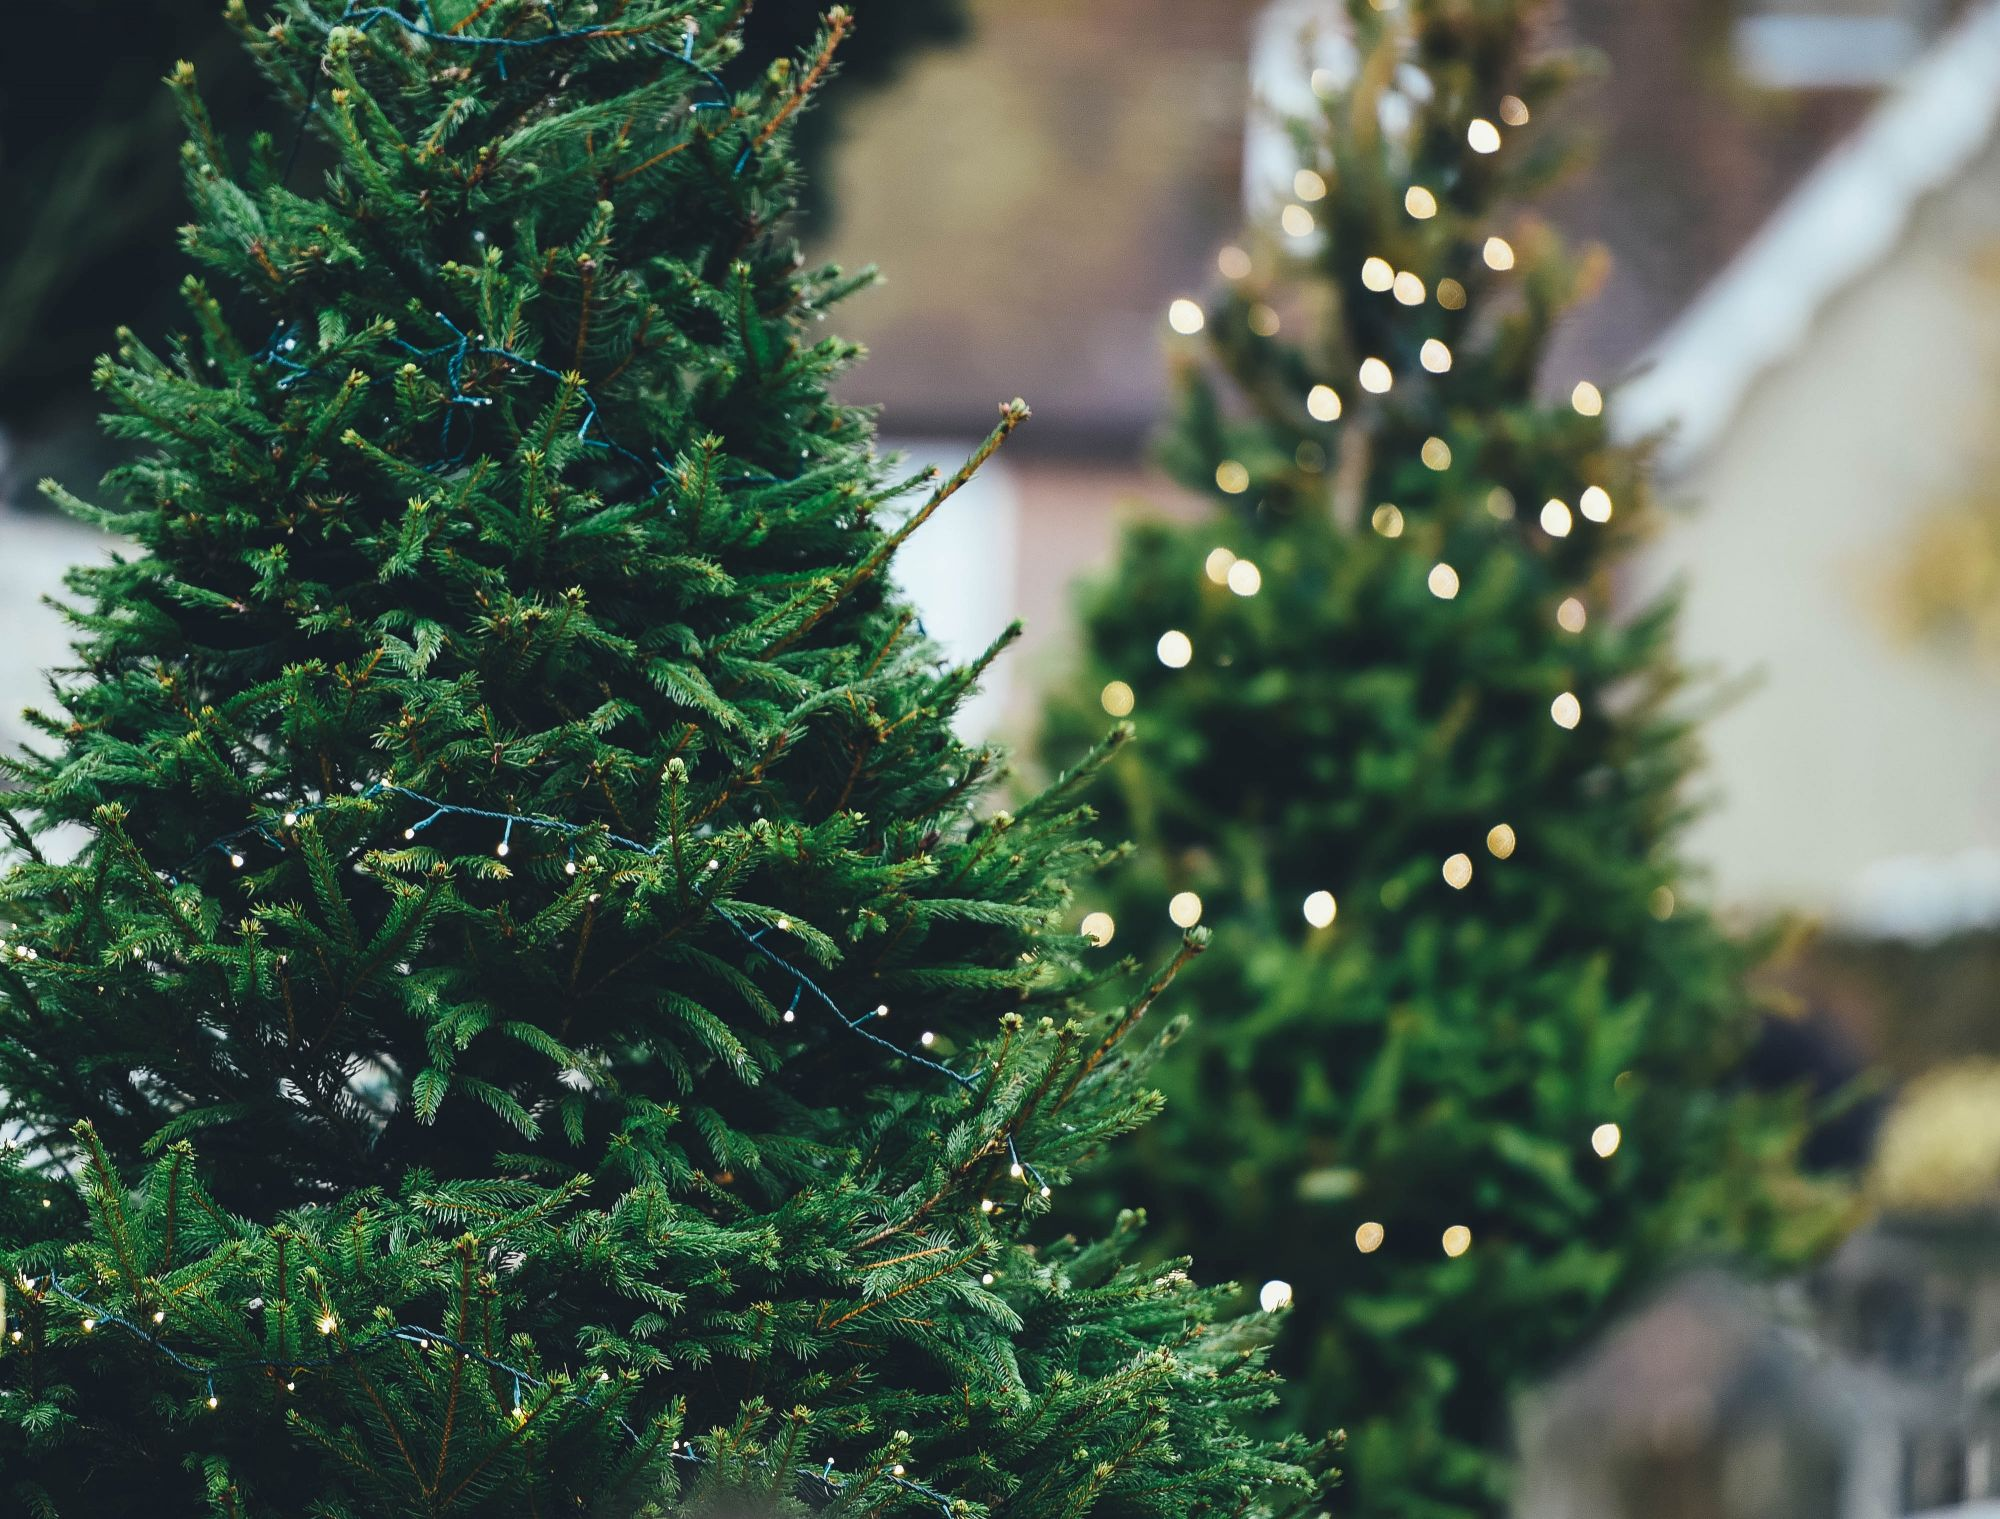 Best Christmas Trees.Where To Find The Best Christmas Trees In Hong Kong Hong